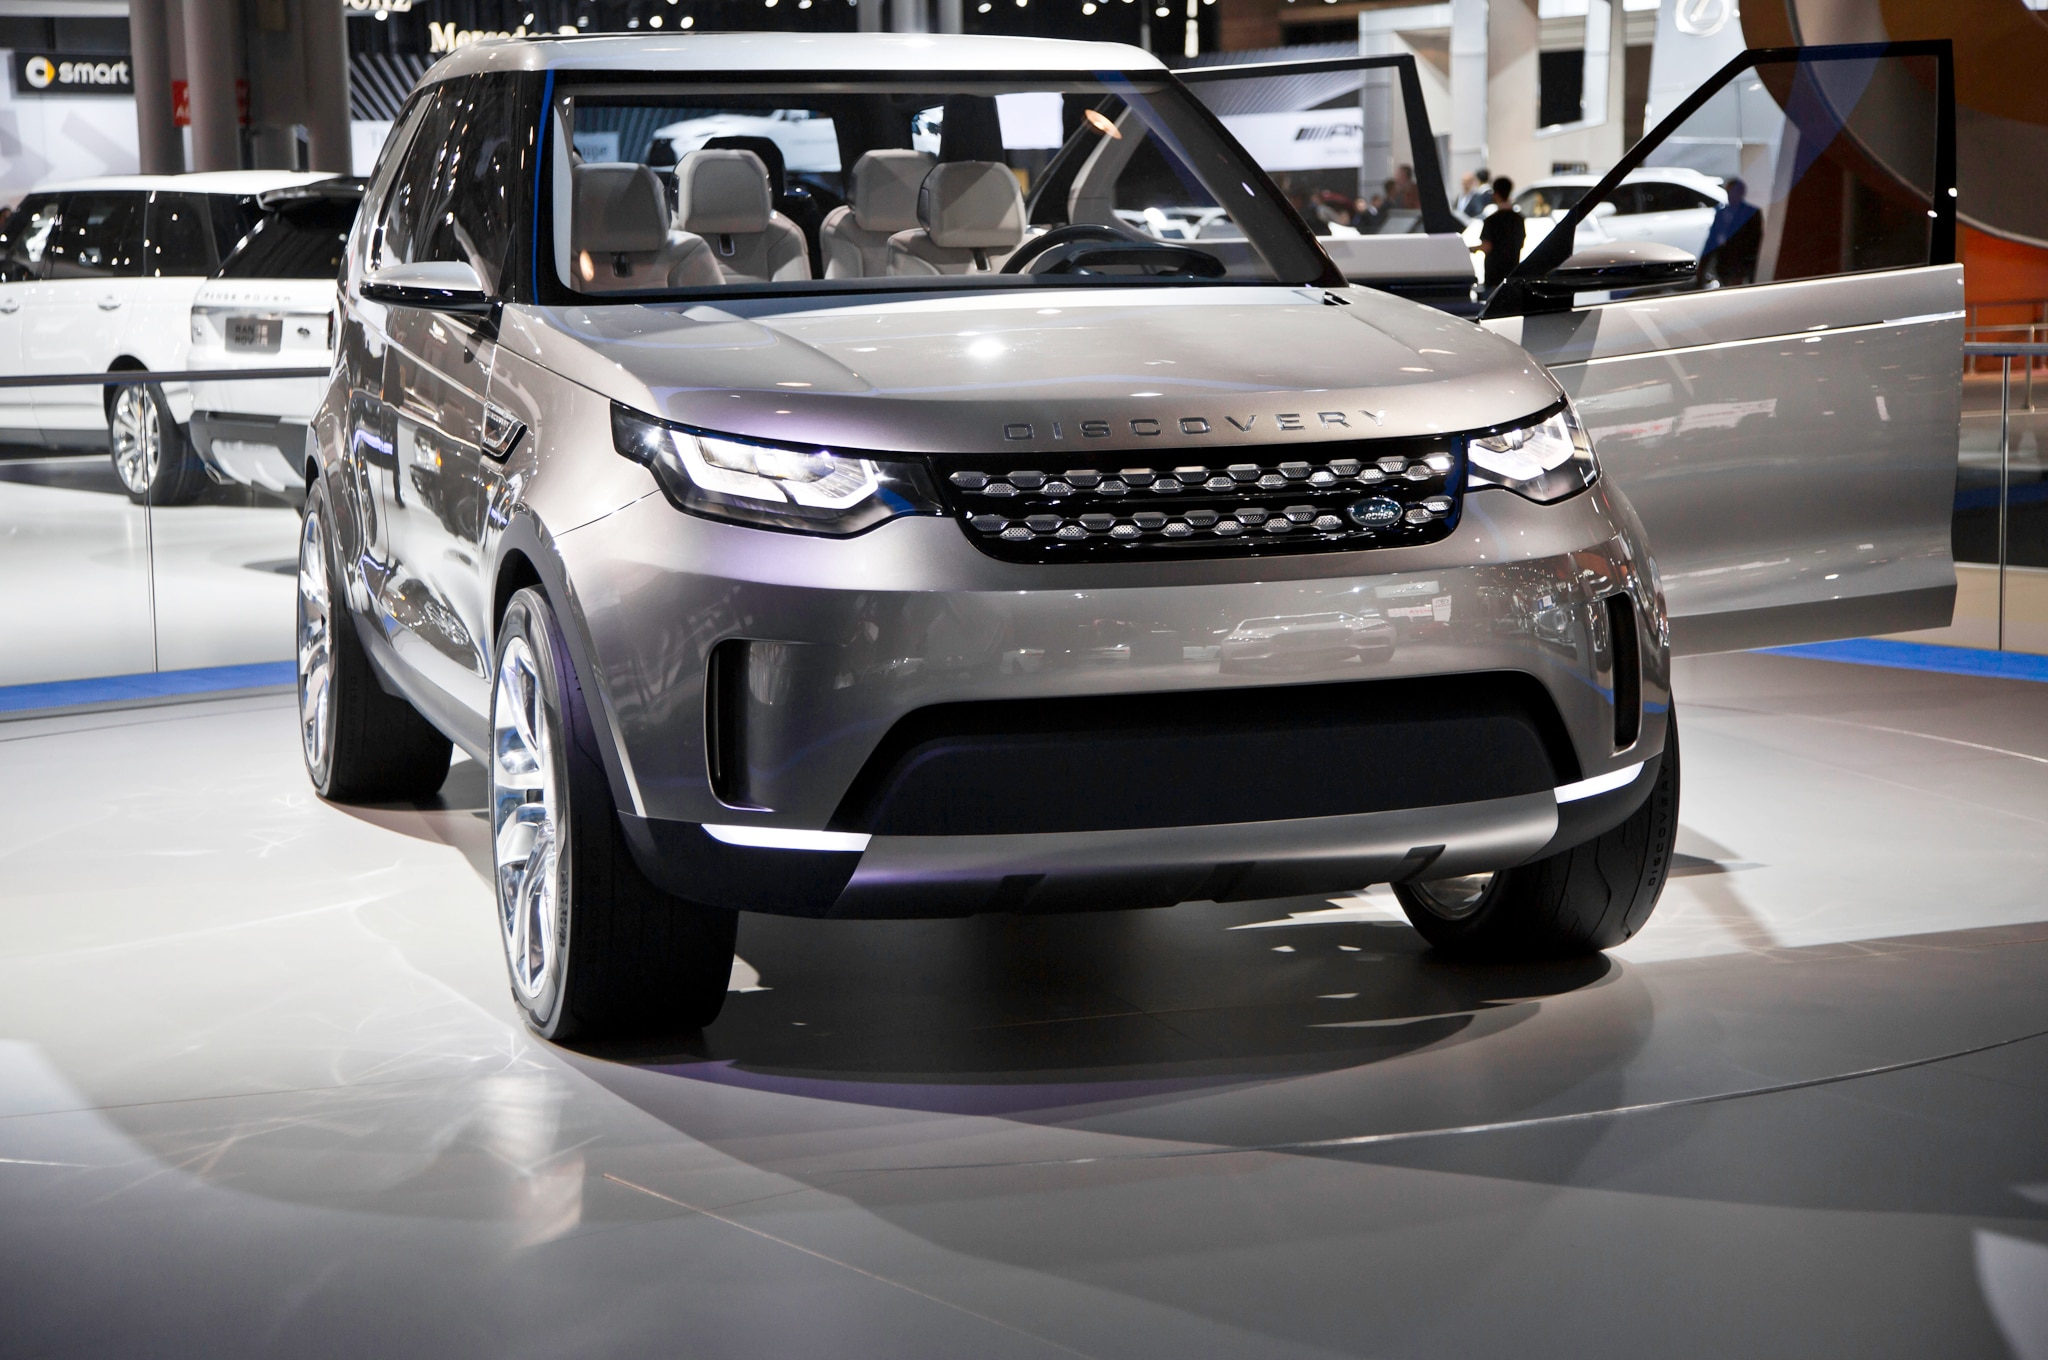 https://st.automobilemag.com/uploads/sites/11/2014/04/Land-Rover-Discovery-Vision-Concept-front-end.jpg